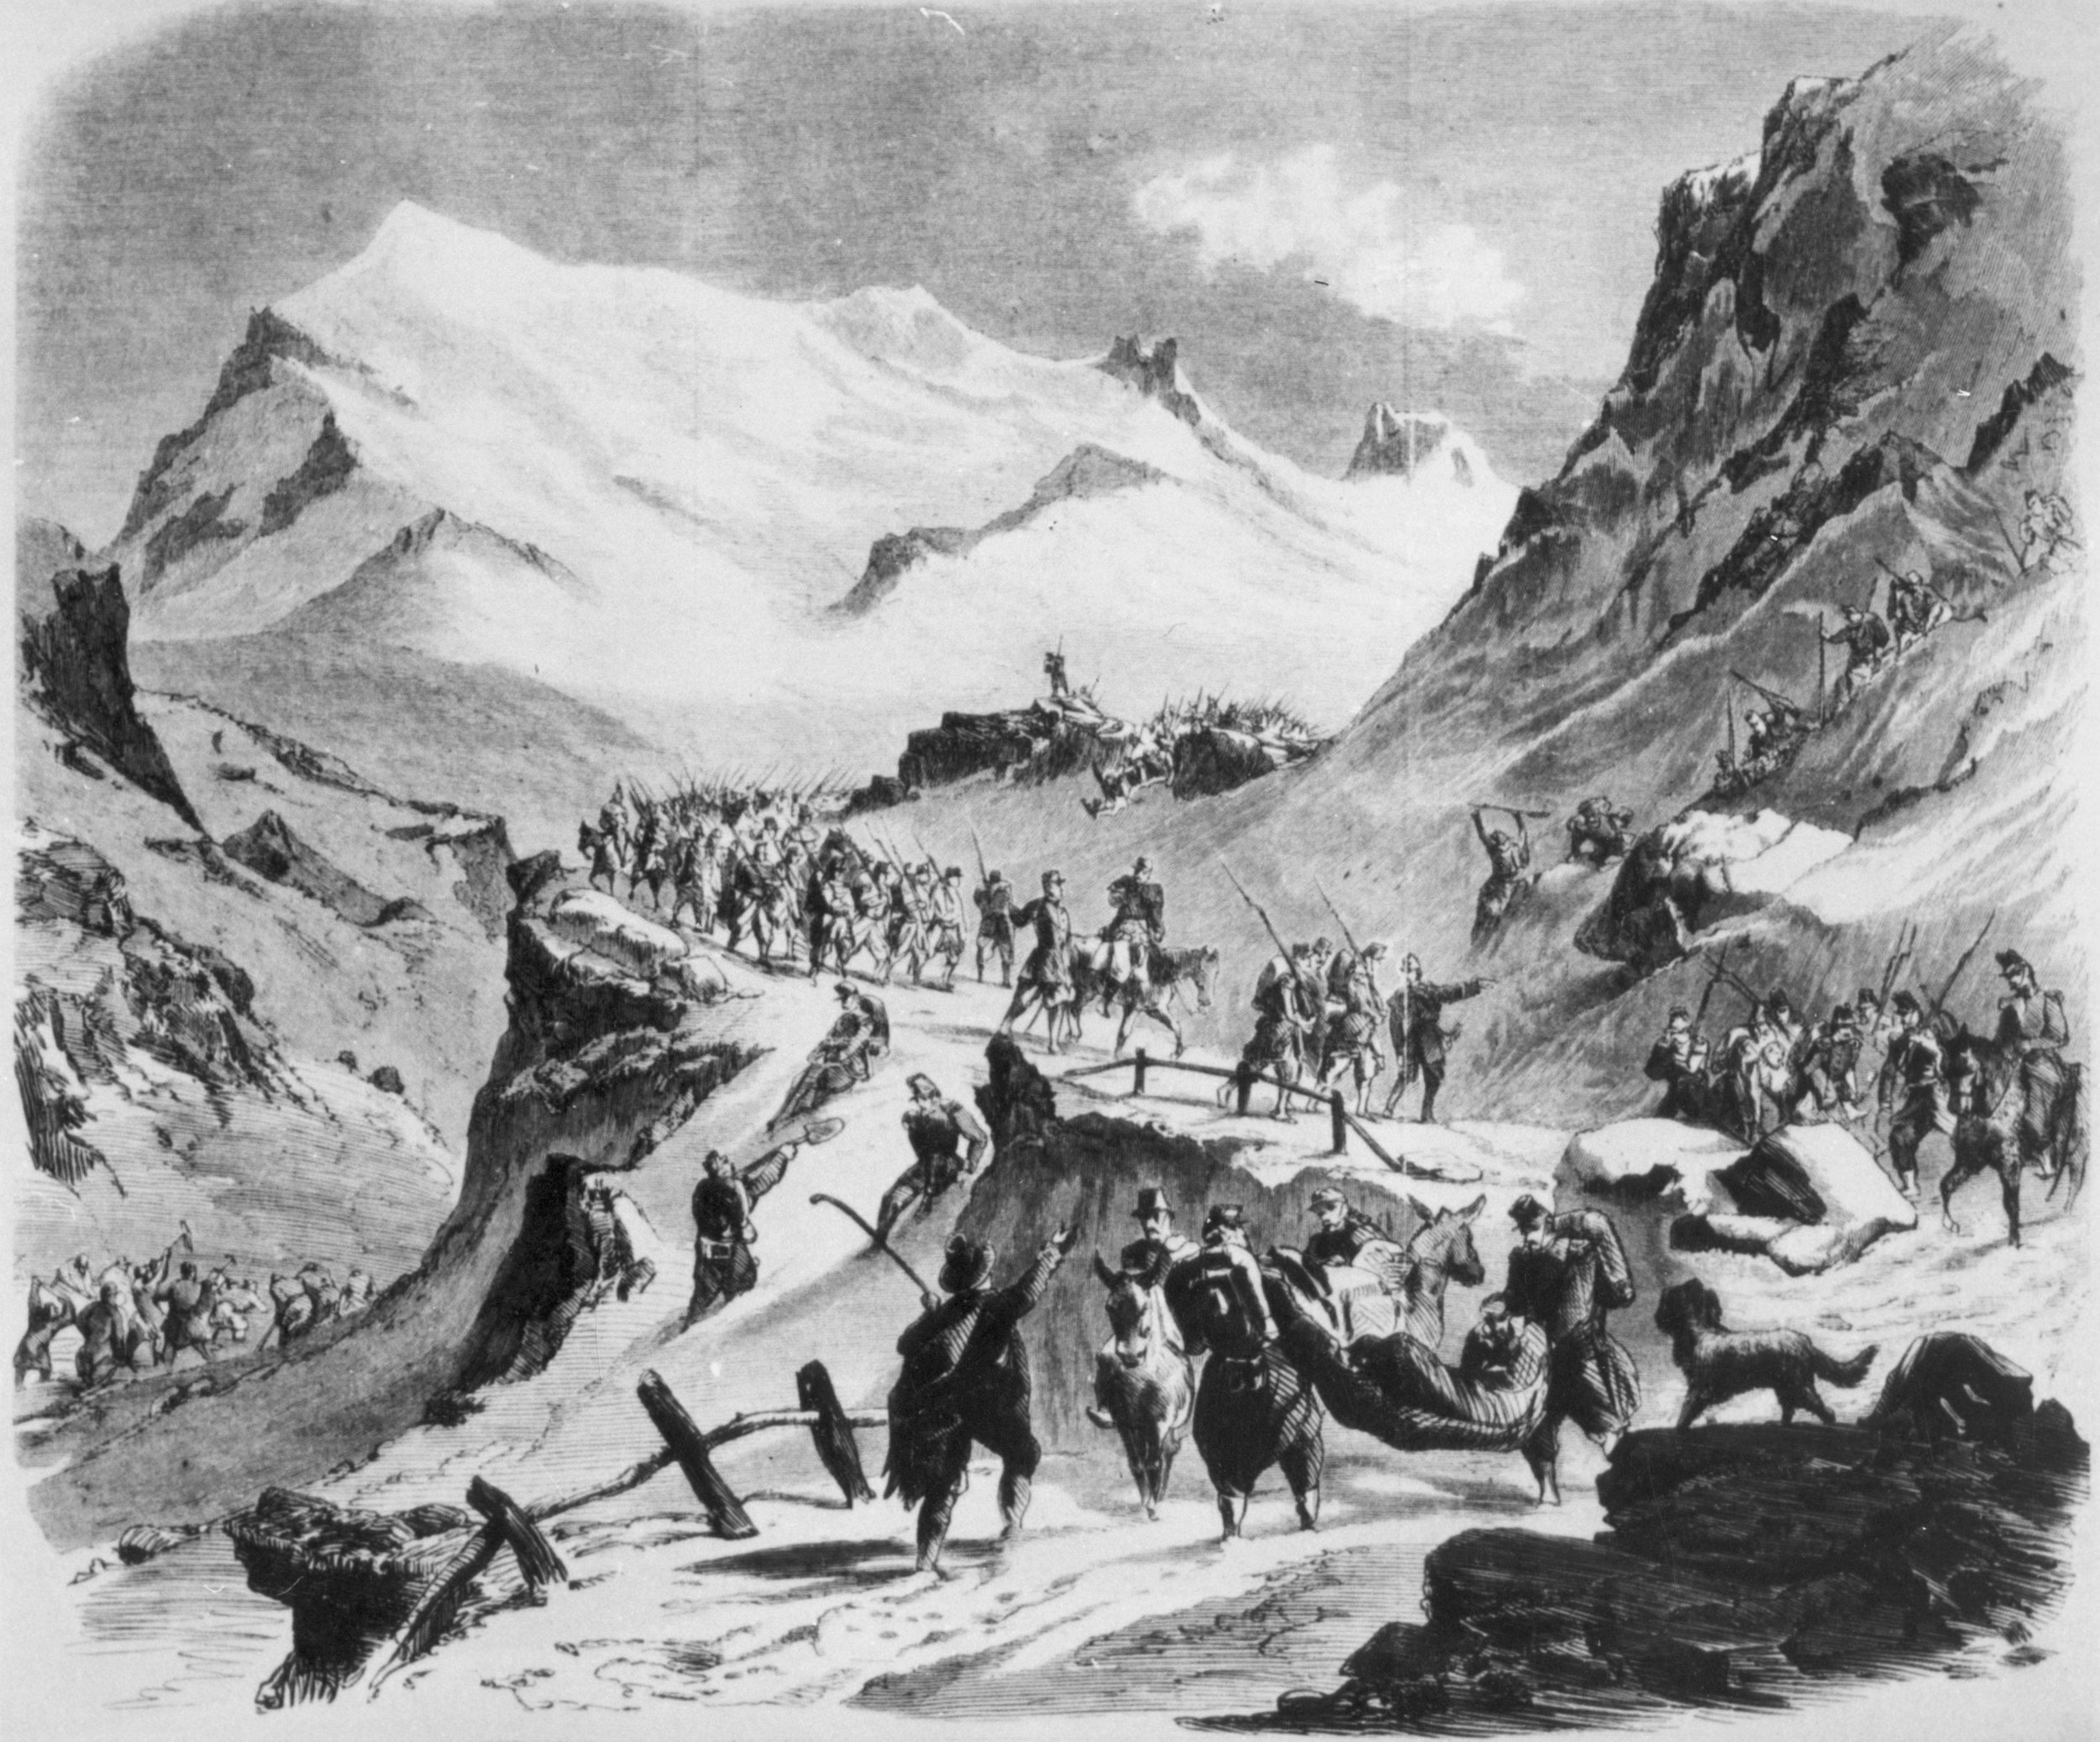 May 28, 1859. The passage of French troops to Mont-Censis heading toward Solferino.